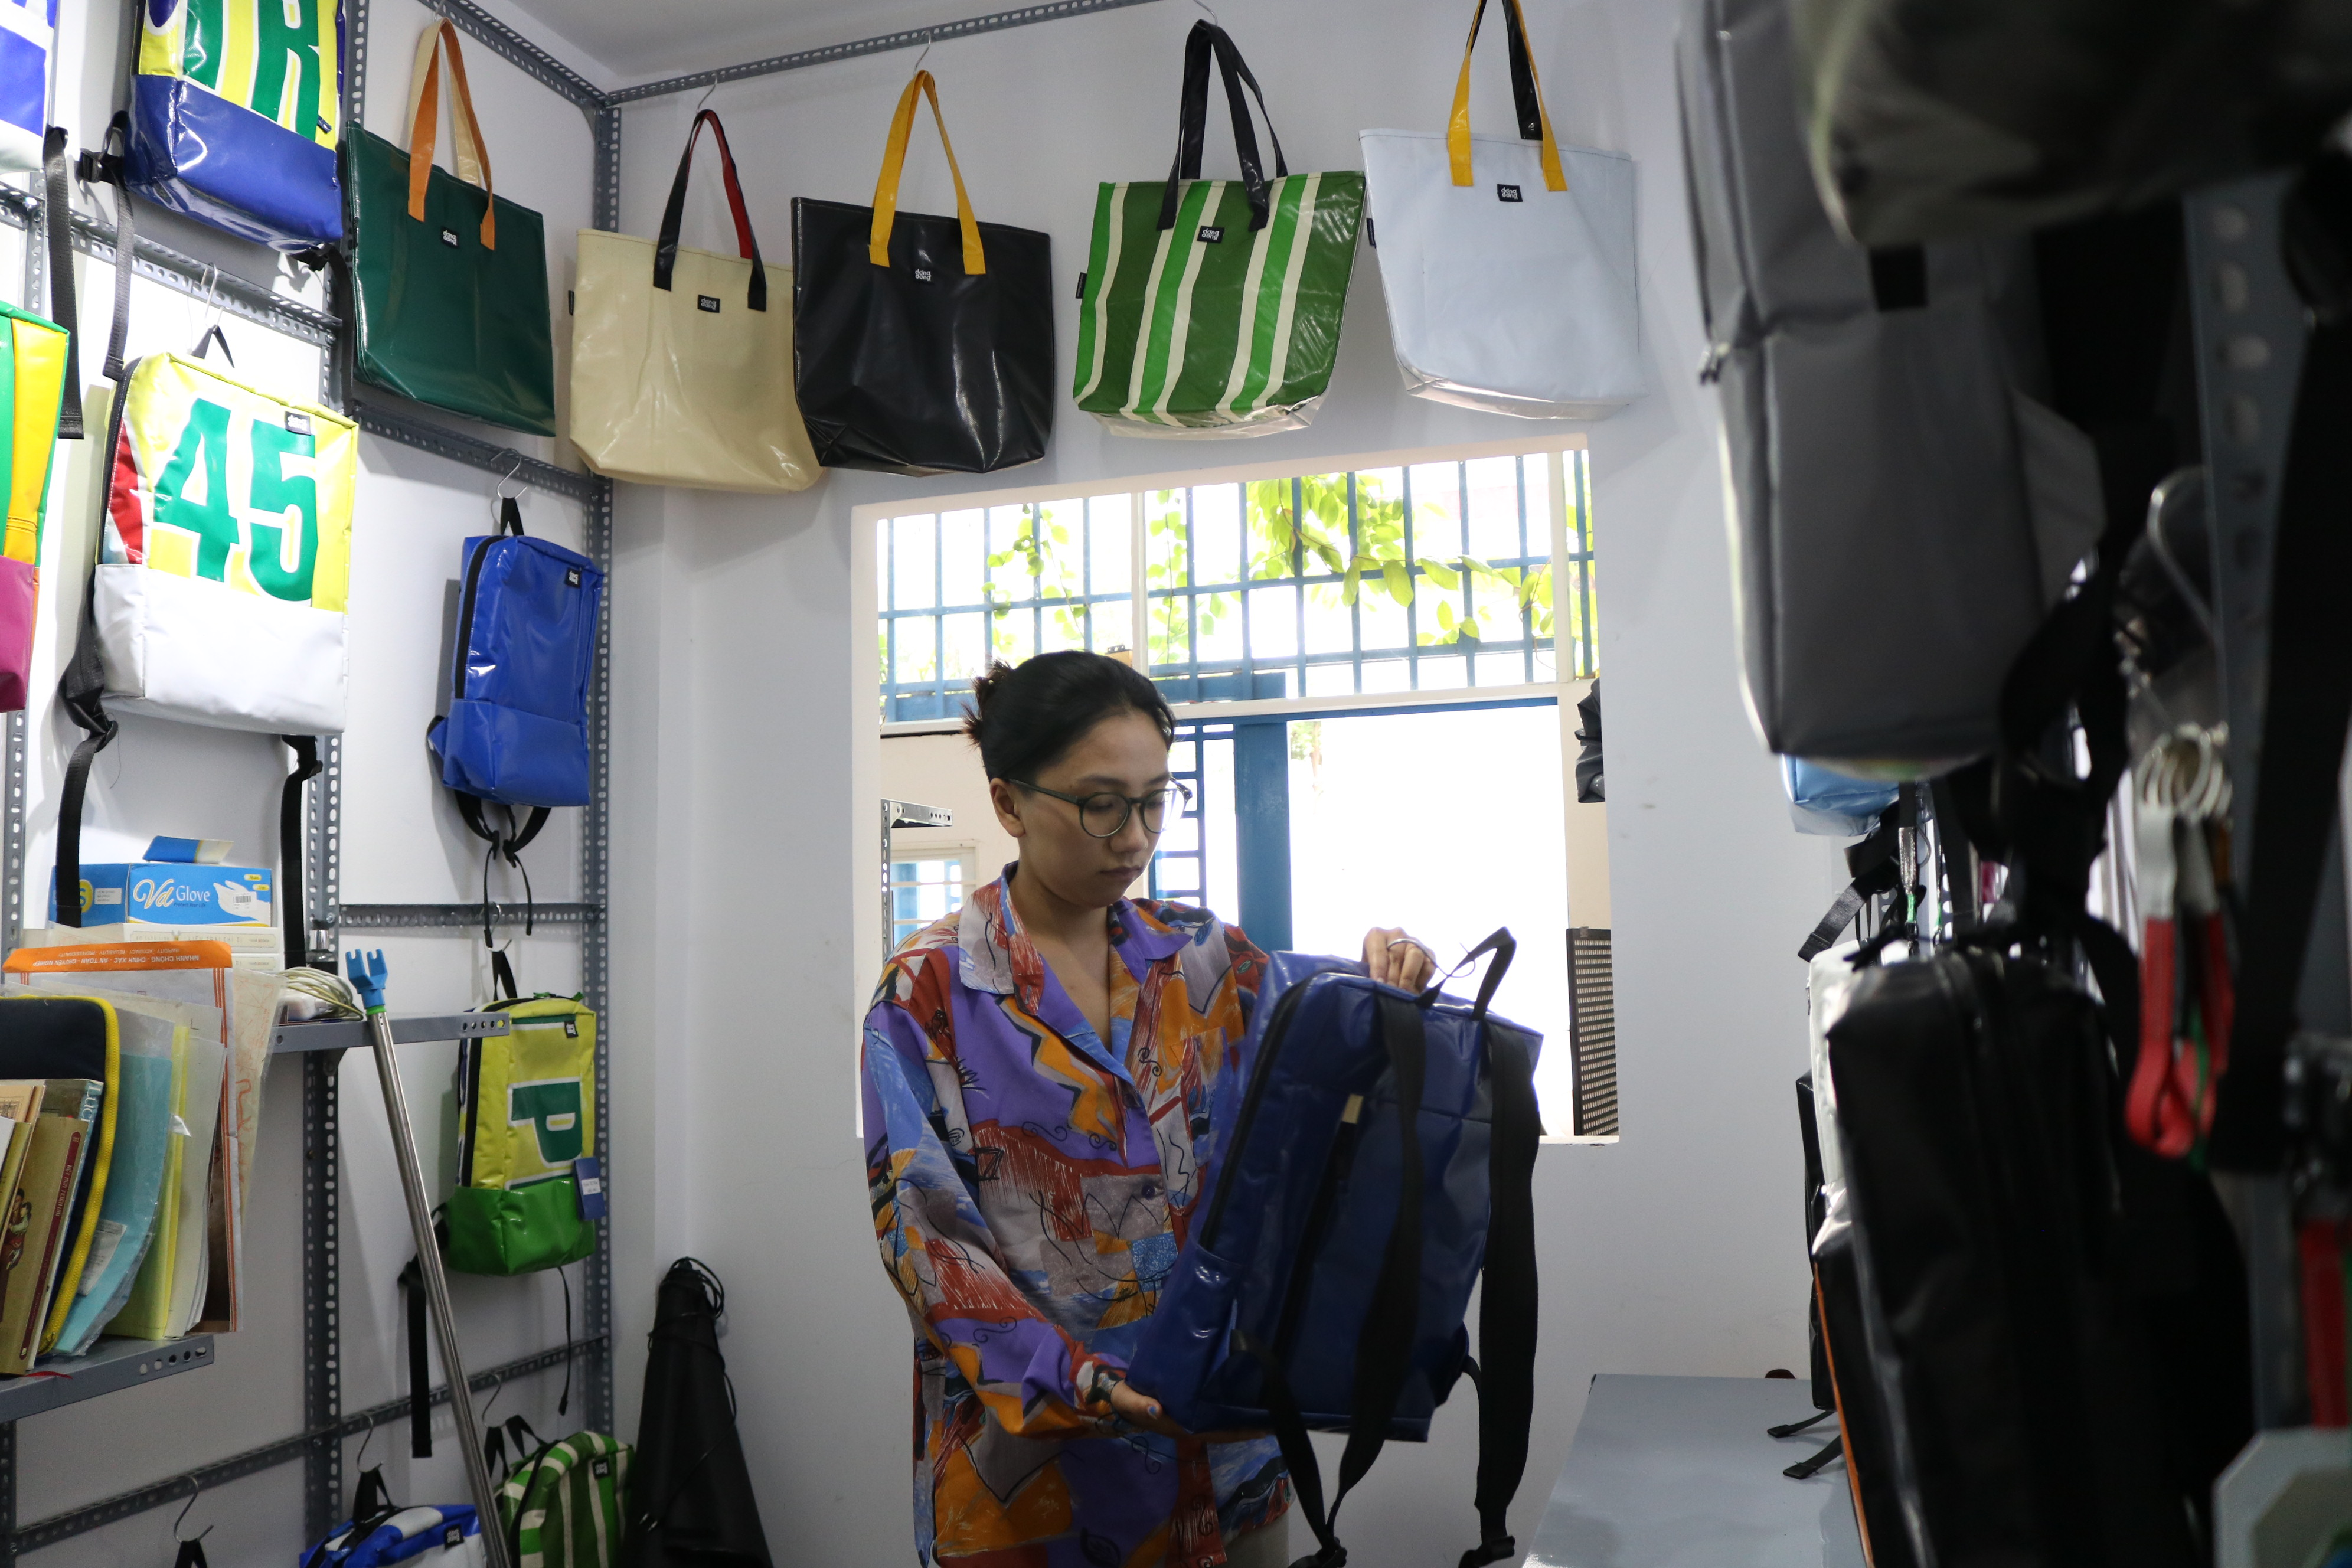 Thao Trang, co-founder of Dong Dong Sai Gon, arranges bags at a display area at the brand's workshop in Ho Chi Minh City, August 2020. Photo: Hoang An / Tuoi Tre